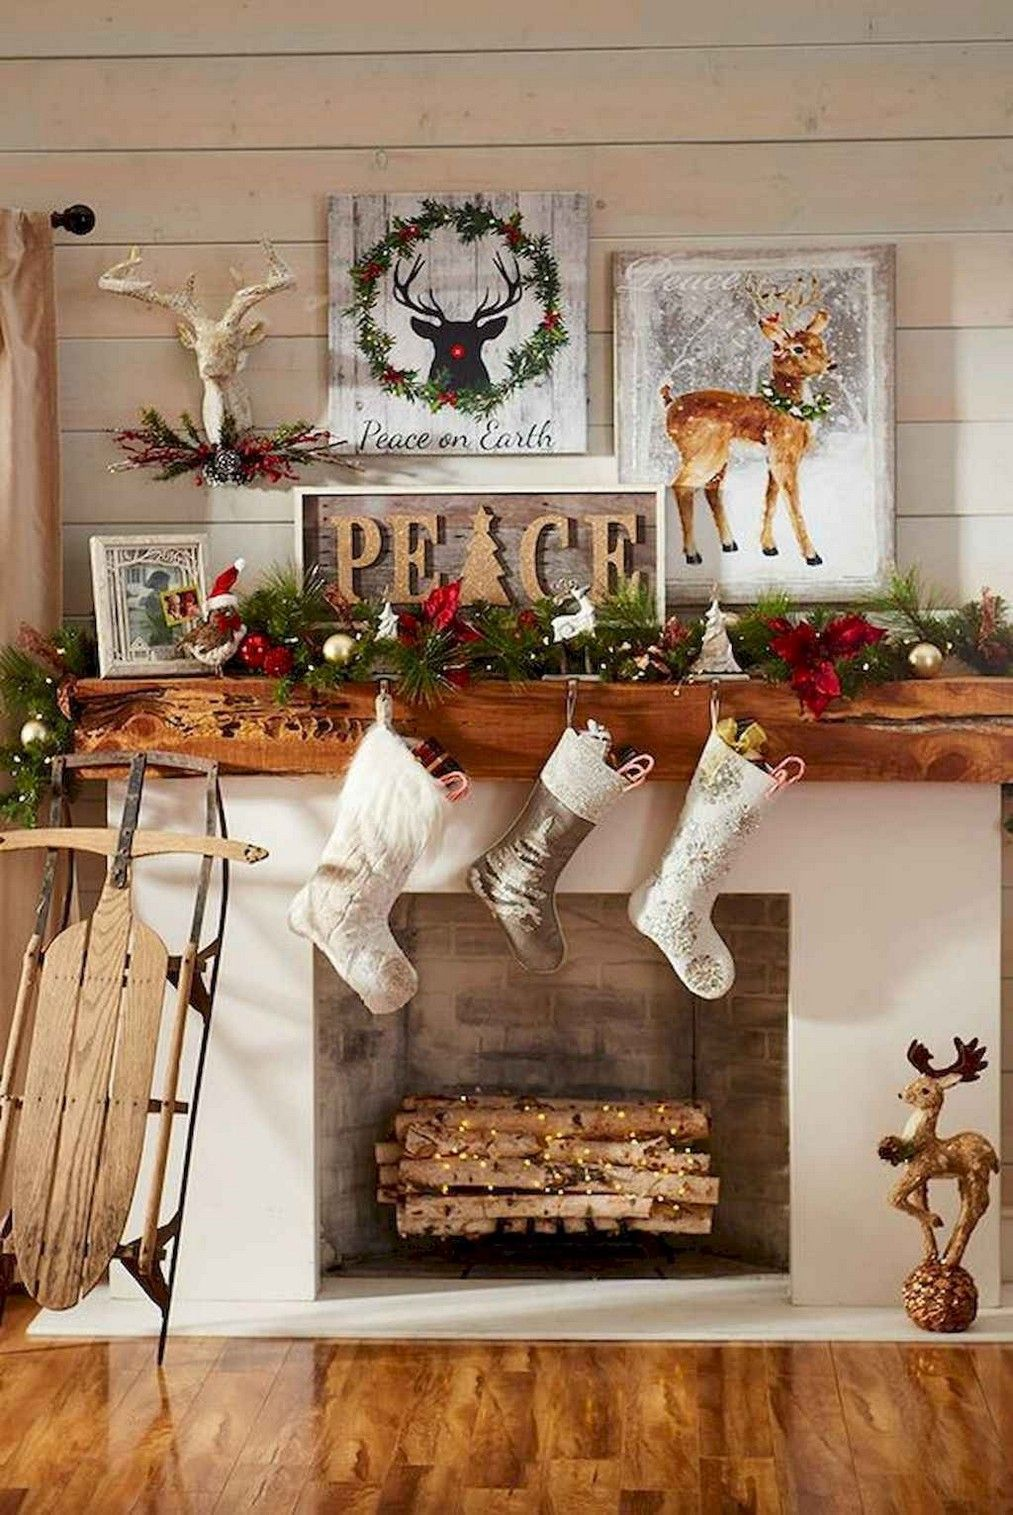 60+ most cozy and elegant christmas living room decoration inspirational ideas - page 30 of 67